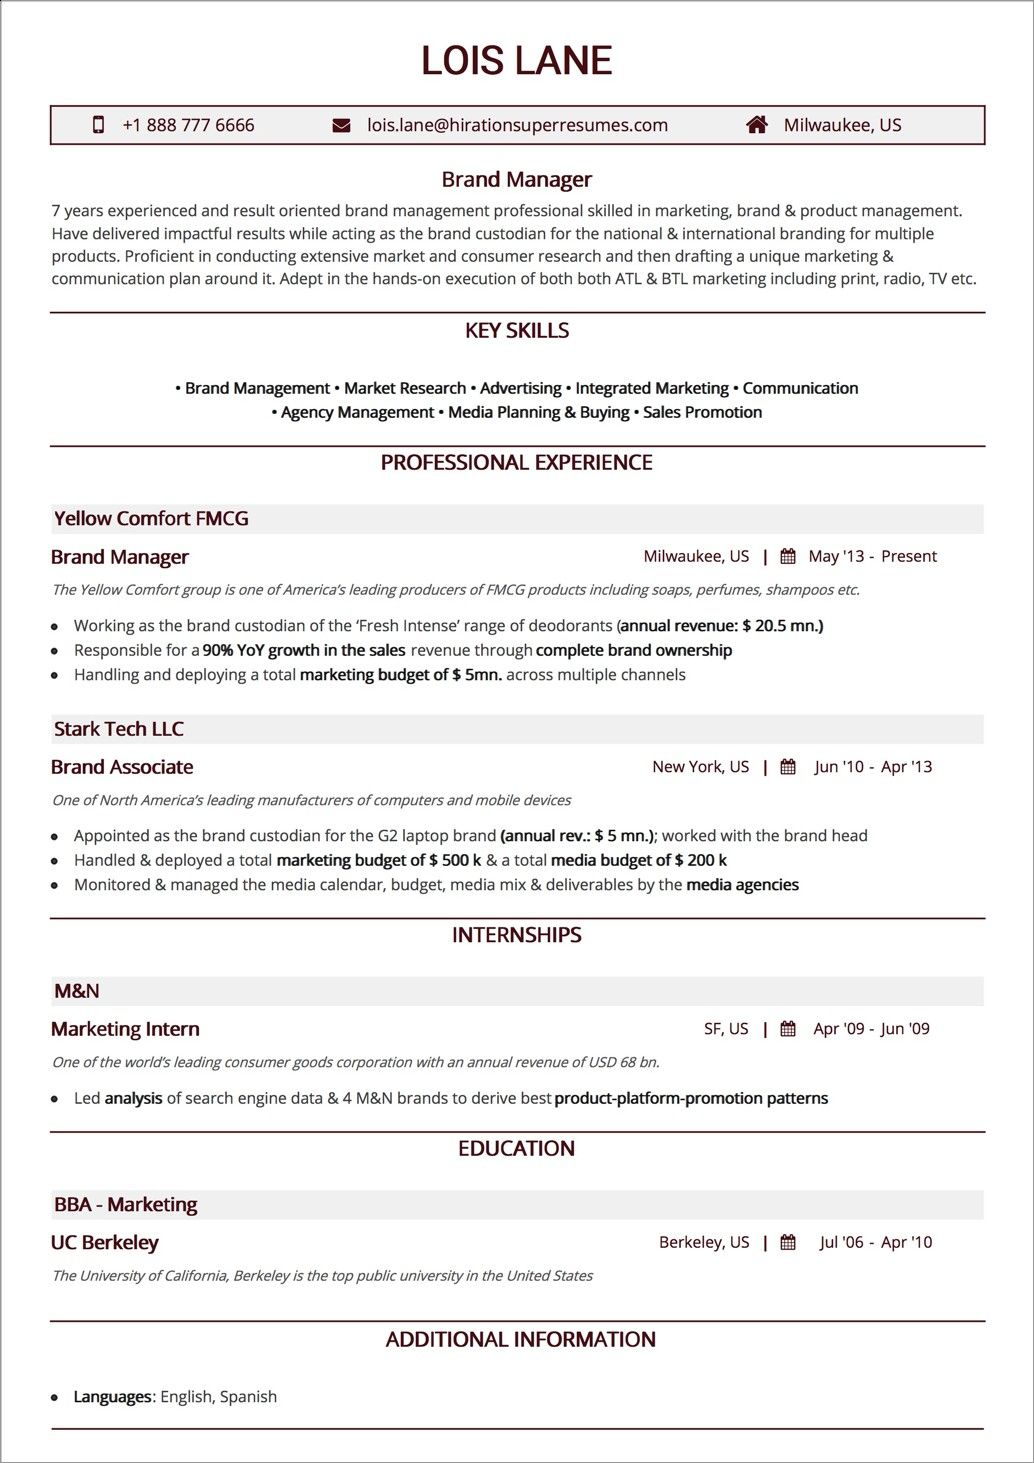 The Best Ideas for Resume Styles 2019 Business analyst